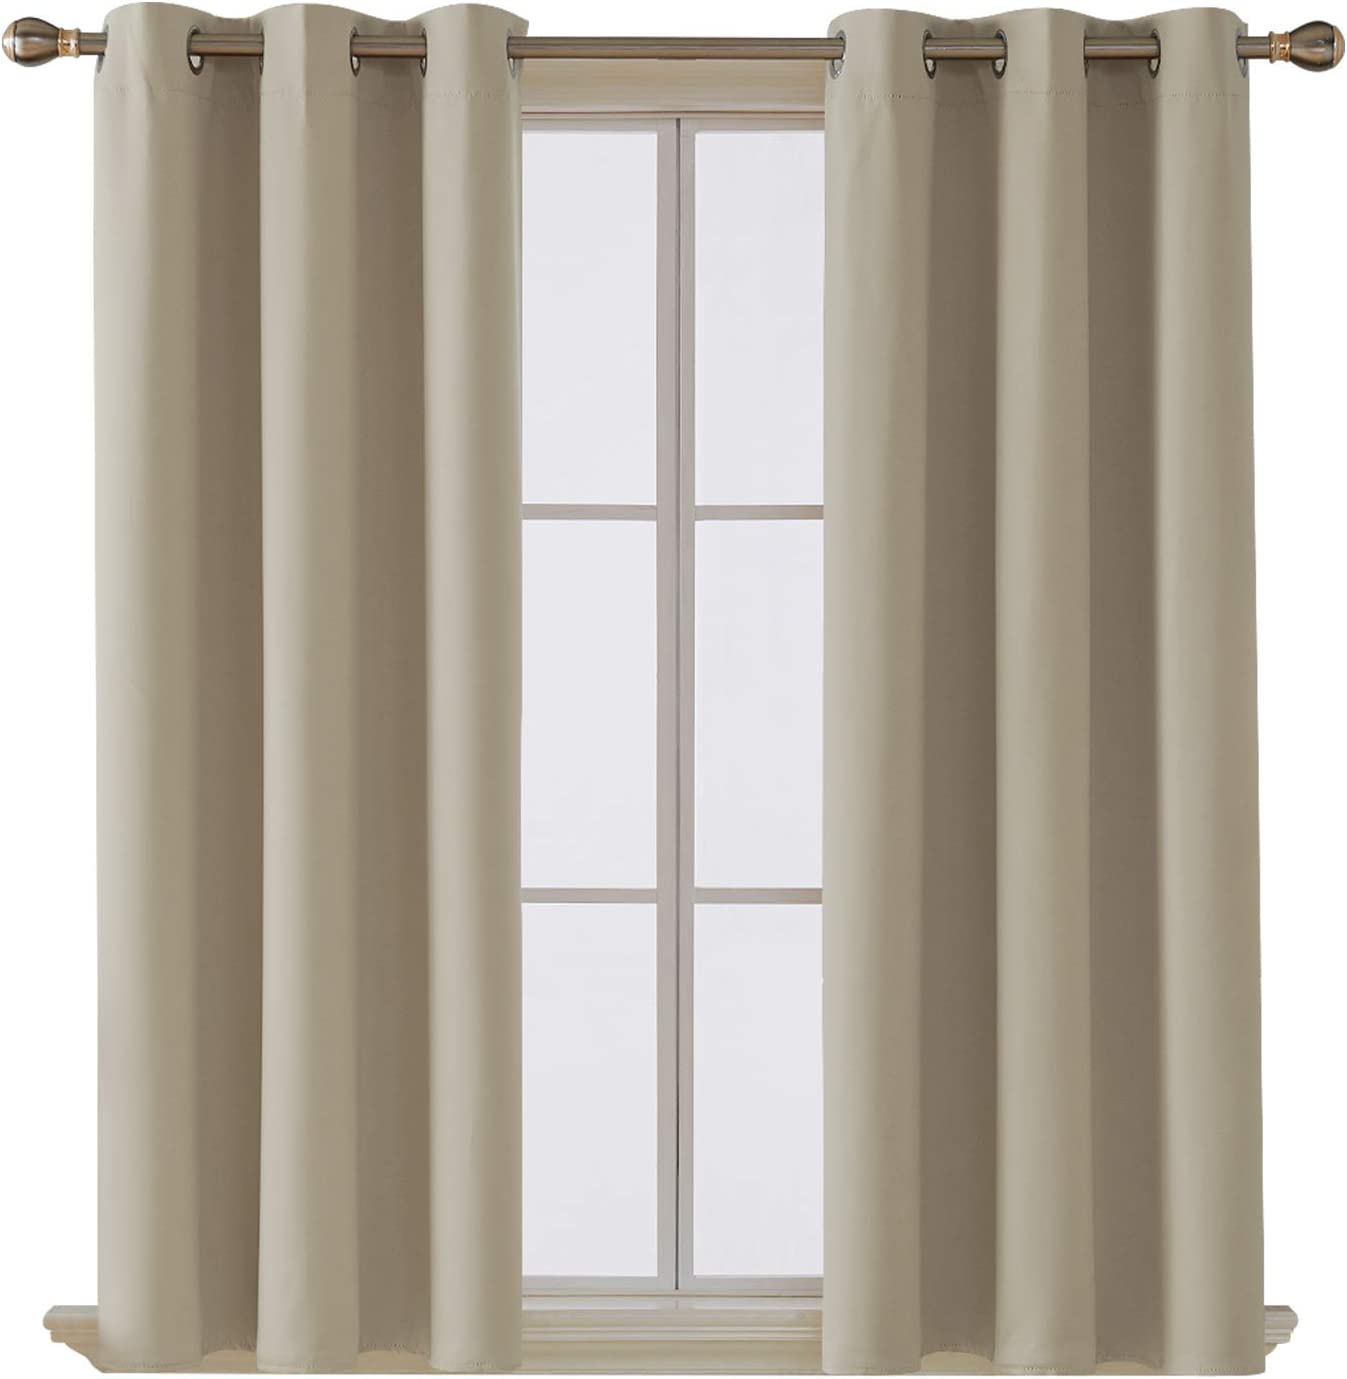 Deconovo Room Darkening Thermal Insulated Blackout Grommet Window Curtain Panel for Living Room, Beige,42x63-Inch,1 Panel